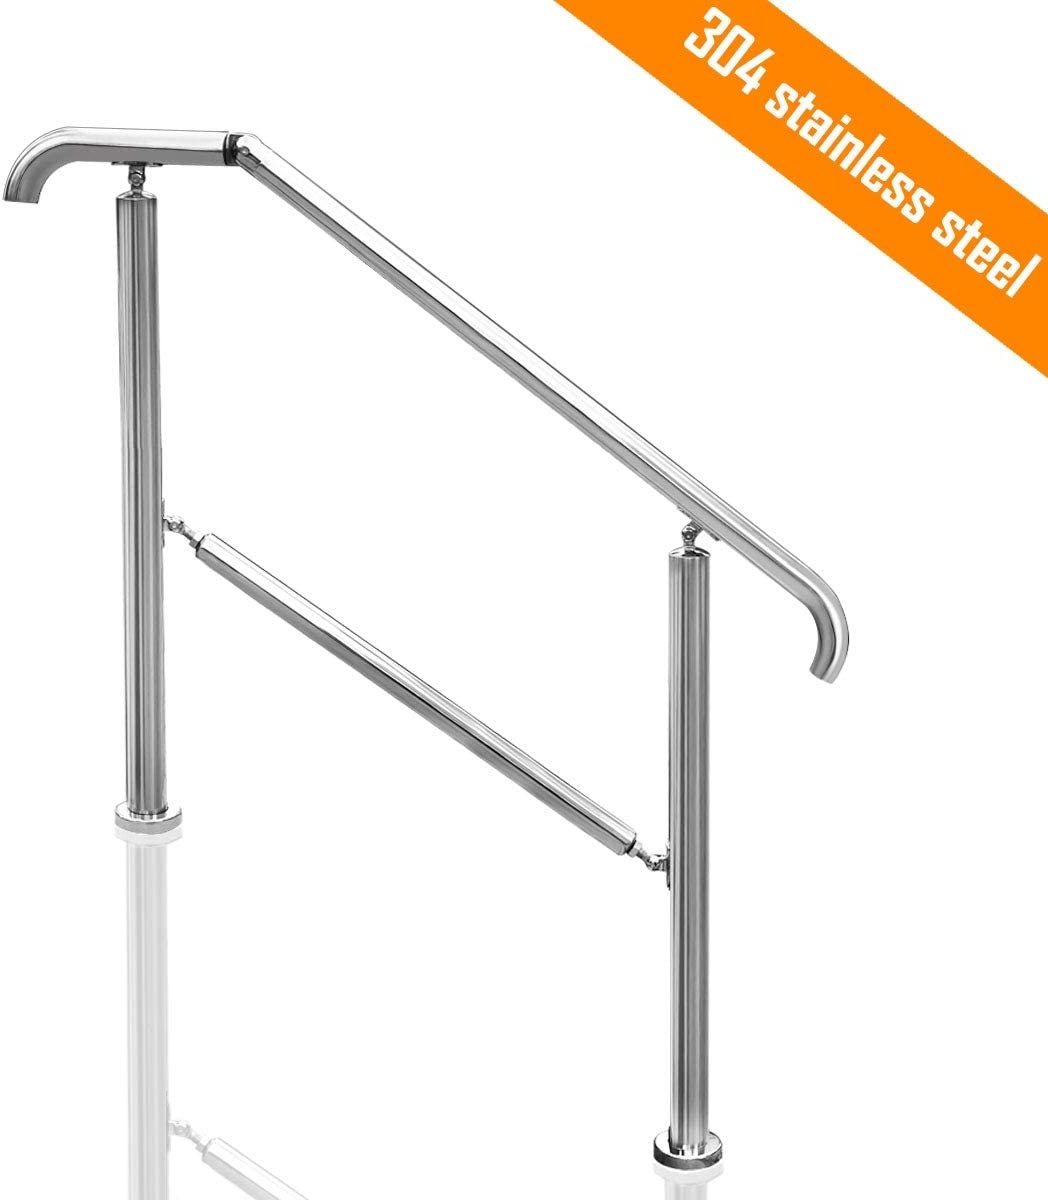 Transitional Handrail Stainless Steel Fits Level Surface And 1To 5   Steel Steps For Stairs   Chequer Plate   Fabricated   Wire Mesh   Prefabricated   Corrugated Metal